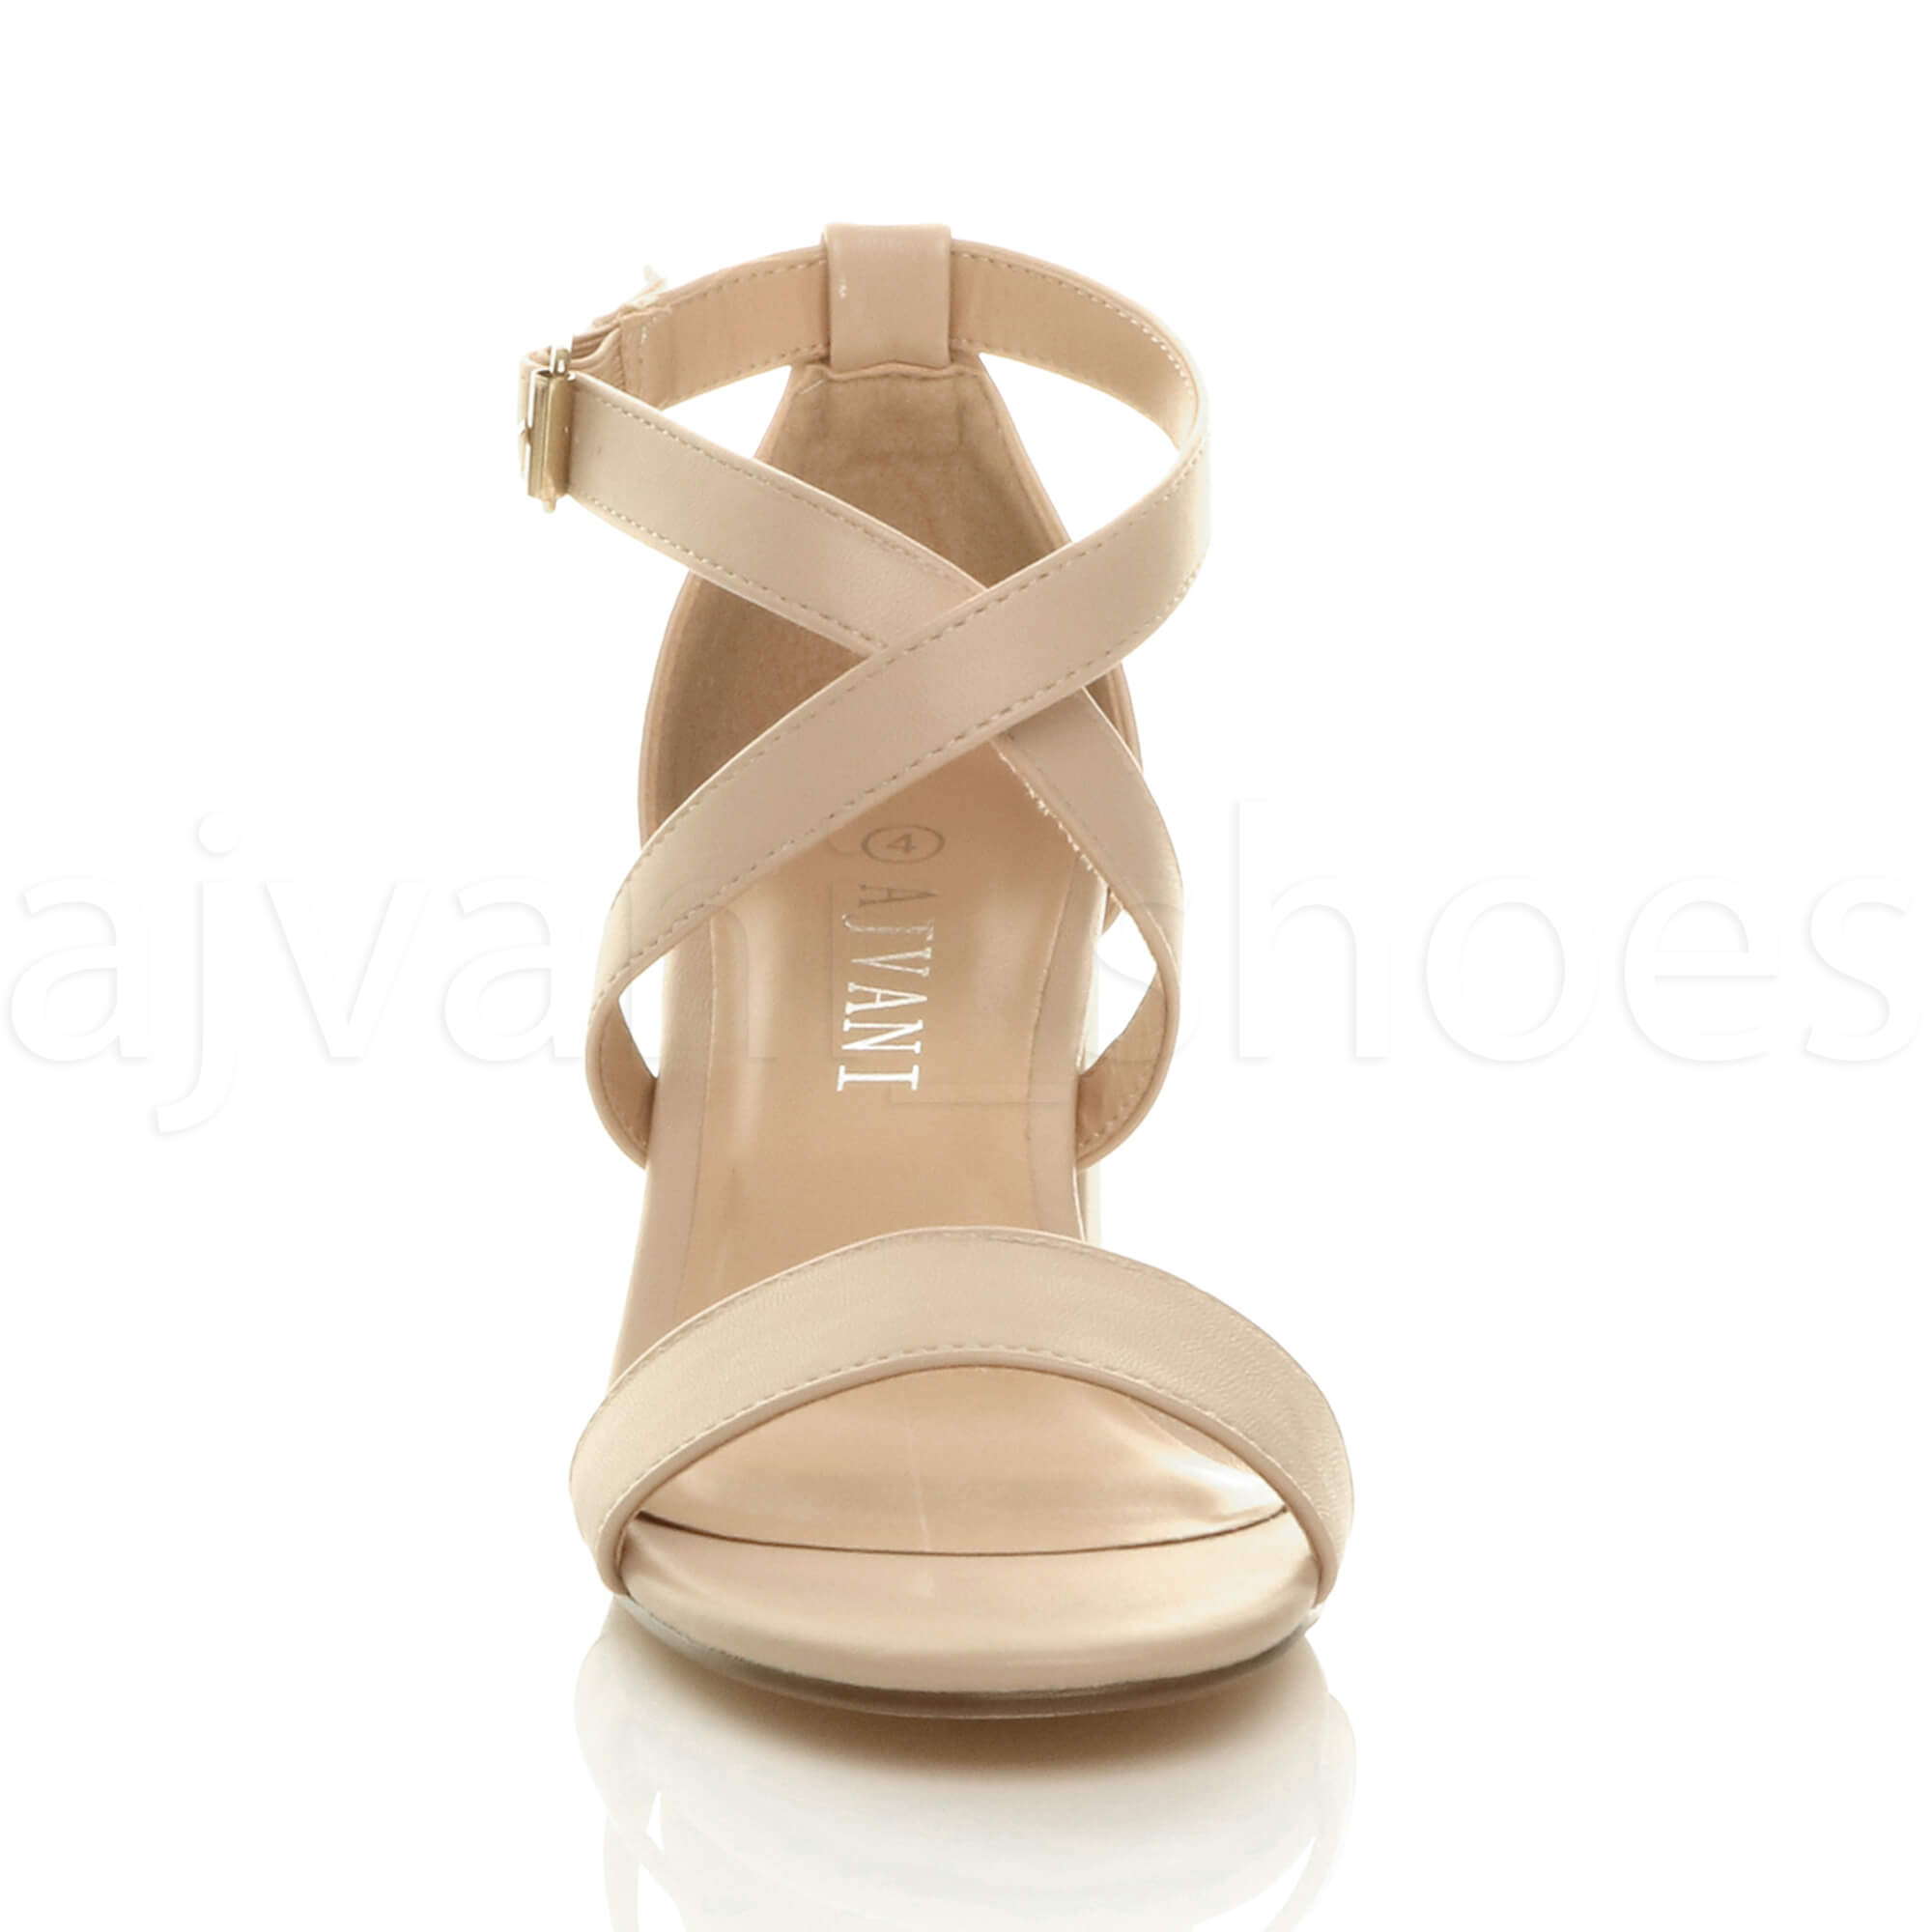 WOMENS-LADIES-MID-LOW-BLOCK-HEEL-CROSS-STRAPS-PARTY-STRAPPY-SANDALS-SHOES-SIZE thumbnail 56